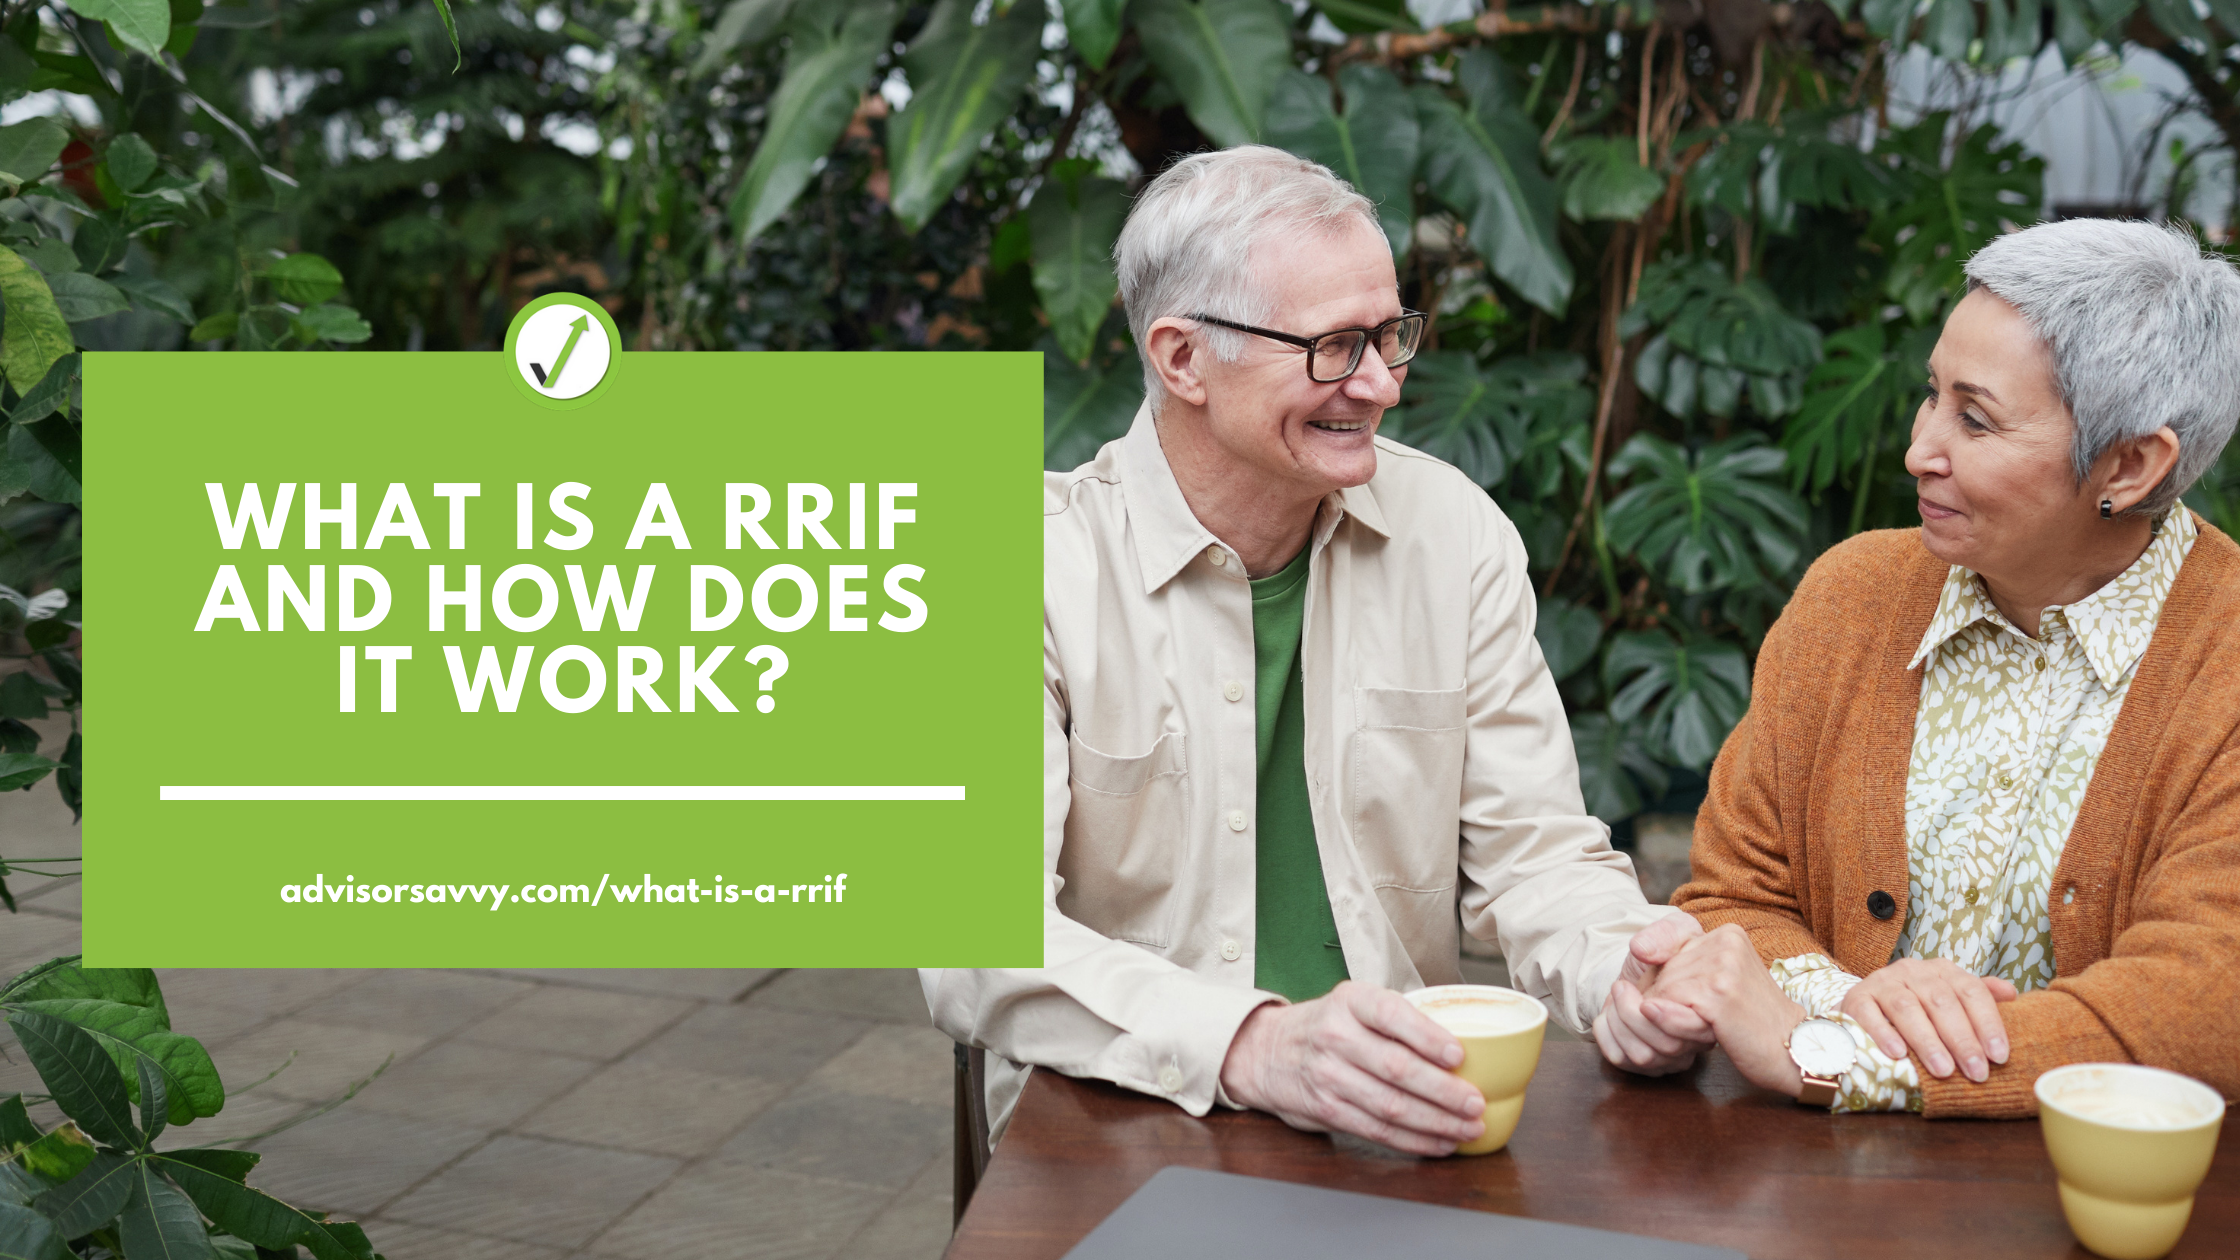 What is a RRIF and how does it work?